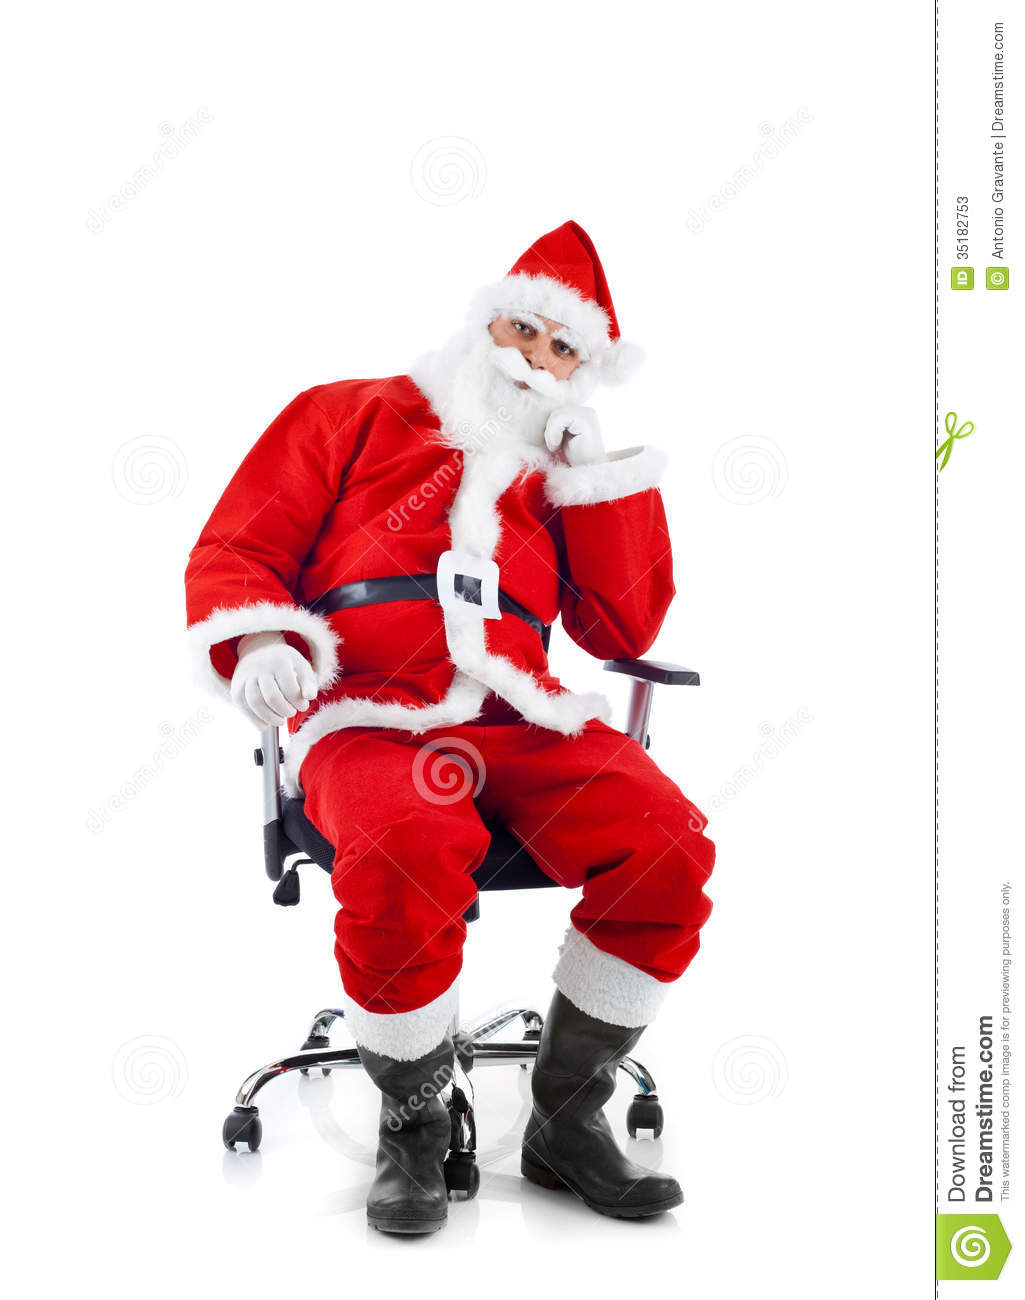 Young Santa Claus Sitting On An Office Chair Stock Image